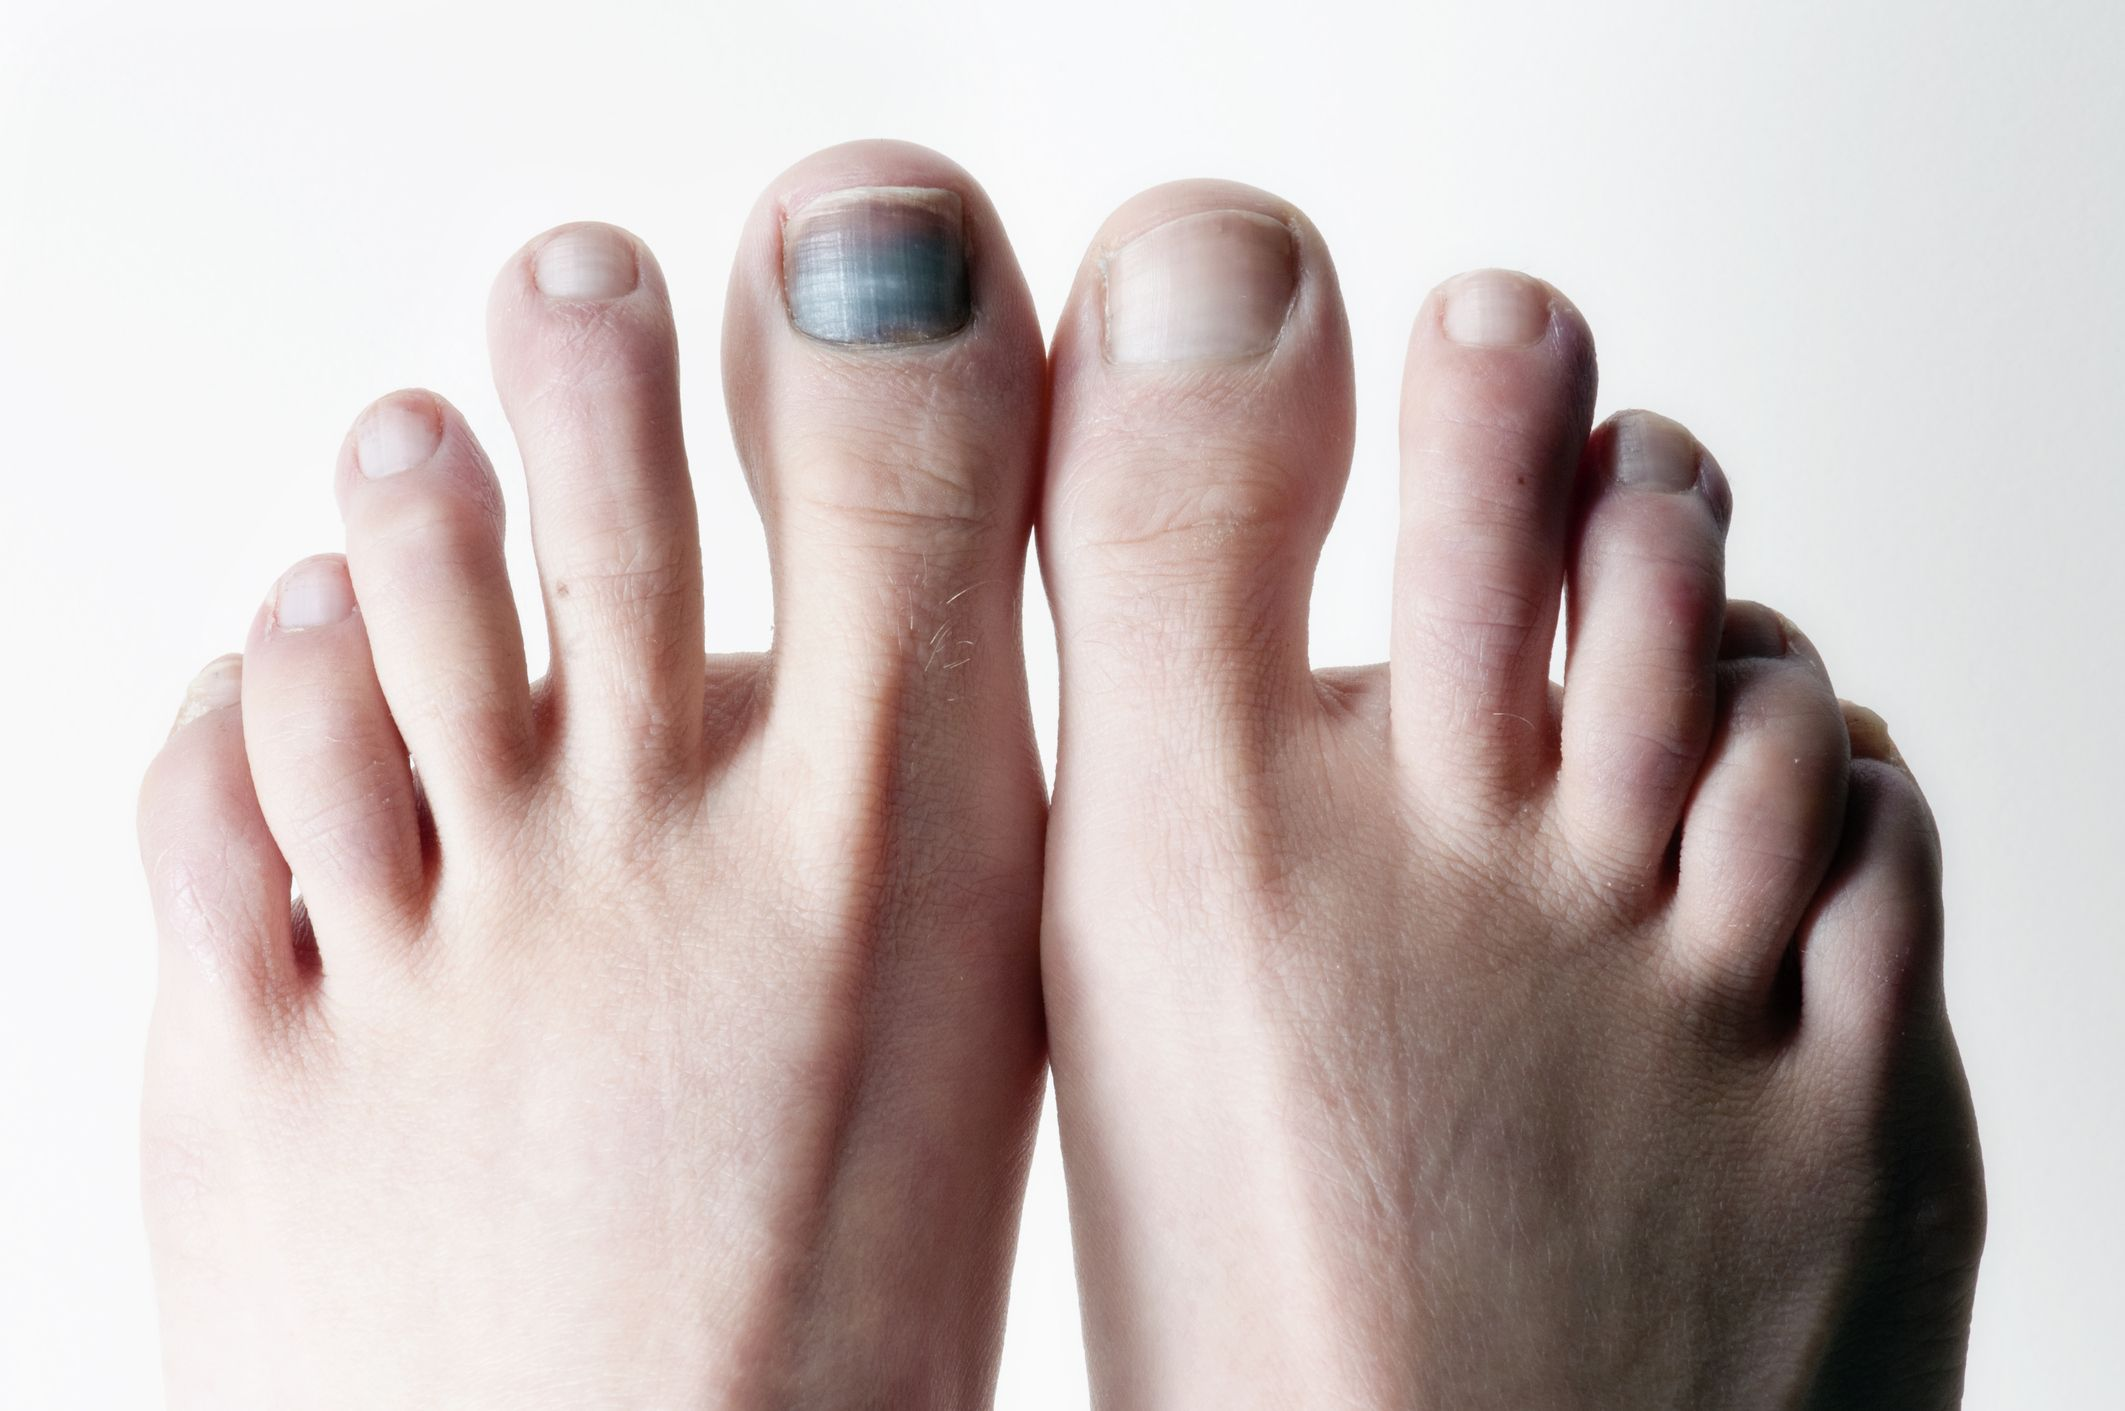 Black Toenails - Bruised Toenails from Running